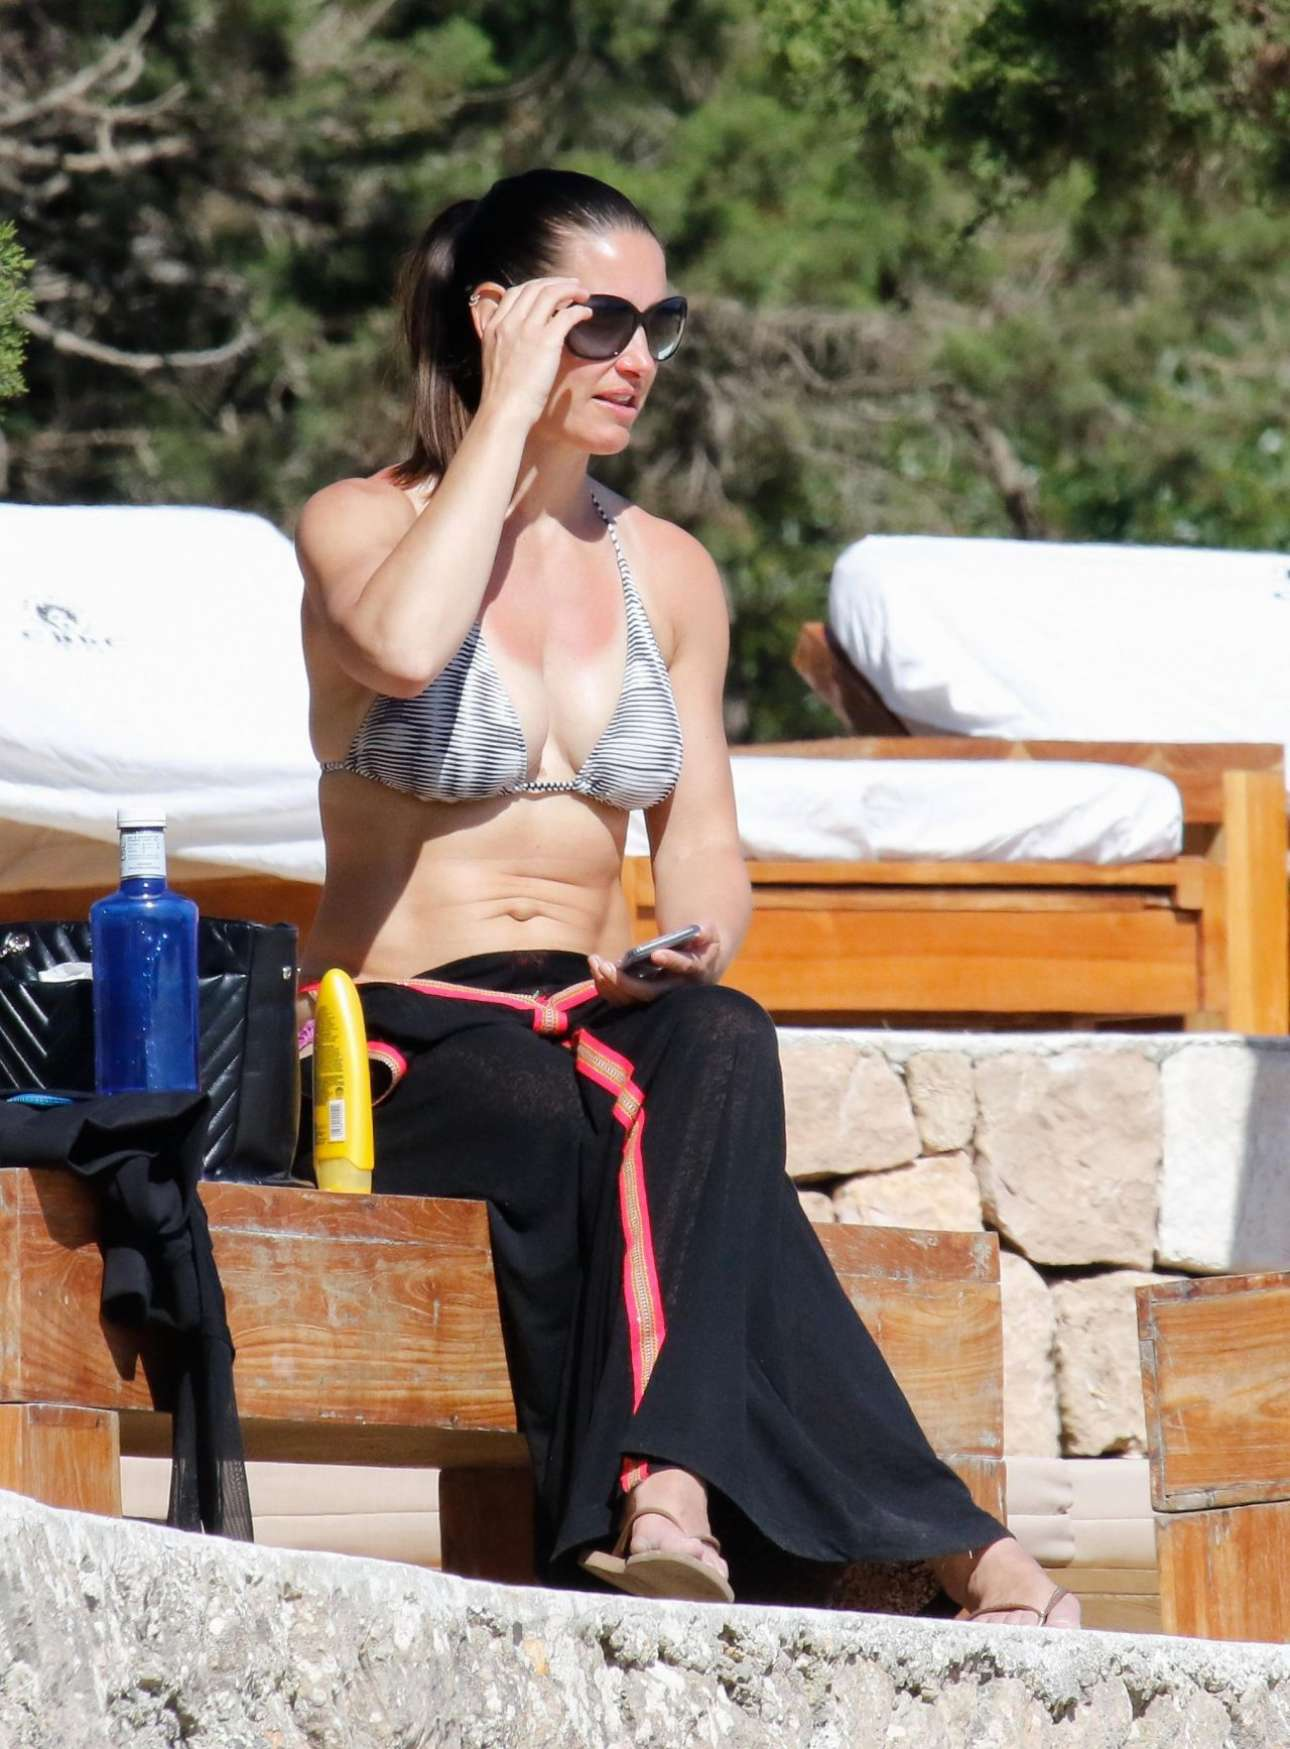 Kirsty Gallacher – Bootcamp Workout On Beach in Ibiza